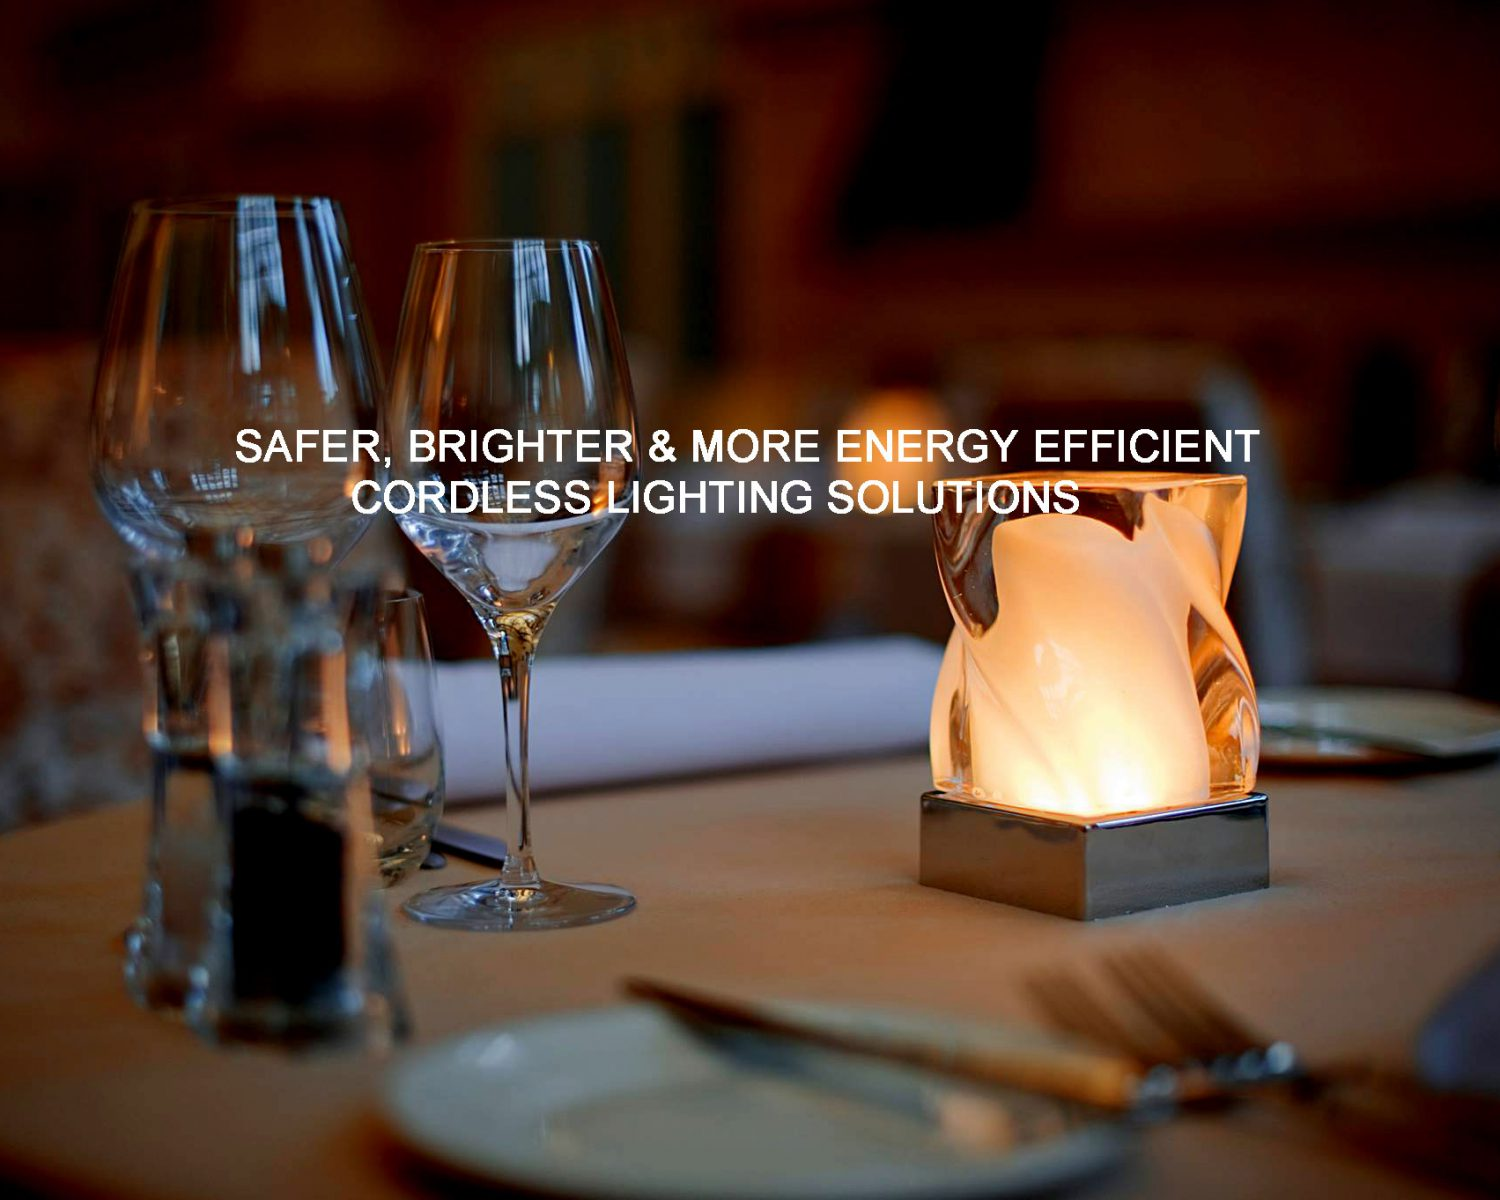 Cordless_Battery_Operated_Table_Lamps_Allres_Cordless_Lighting